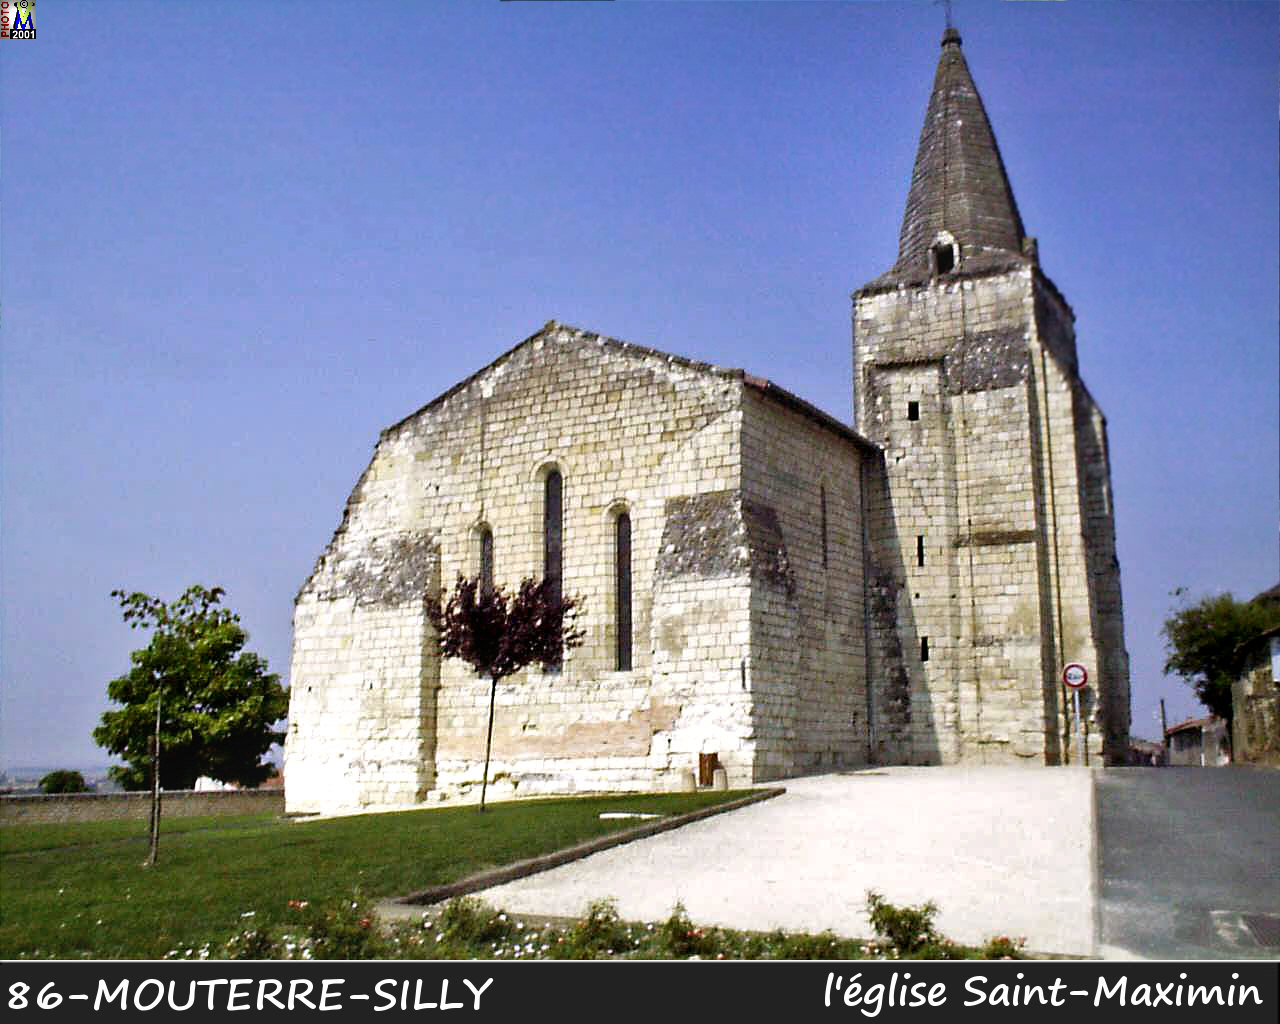 86MOUTERRE-SILLY_eglise_100.jpg